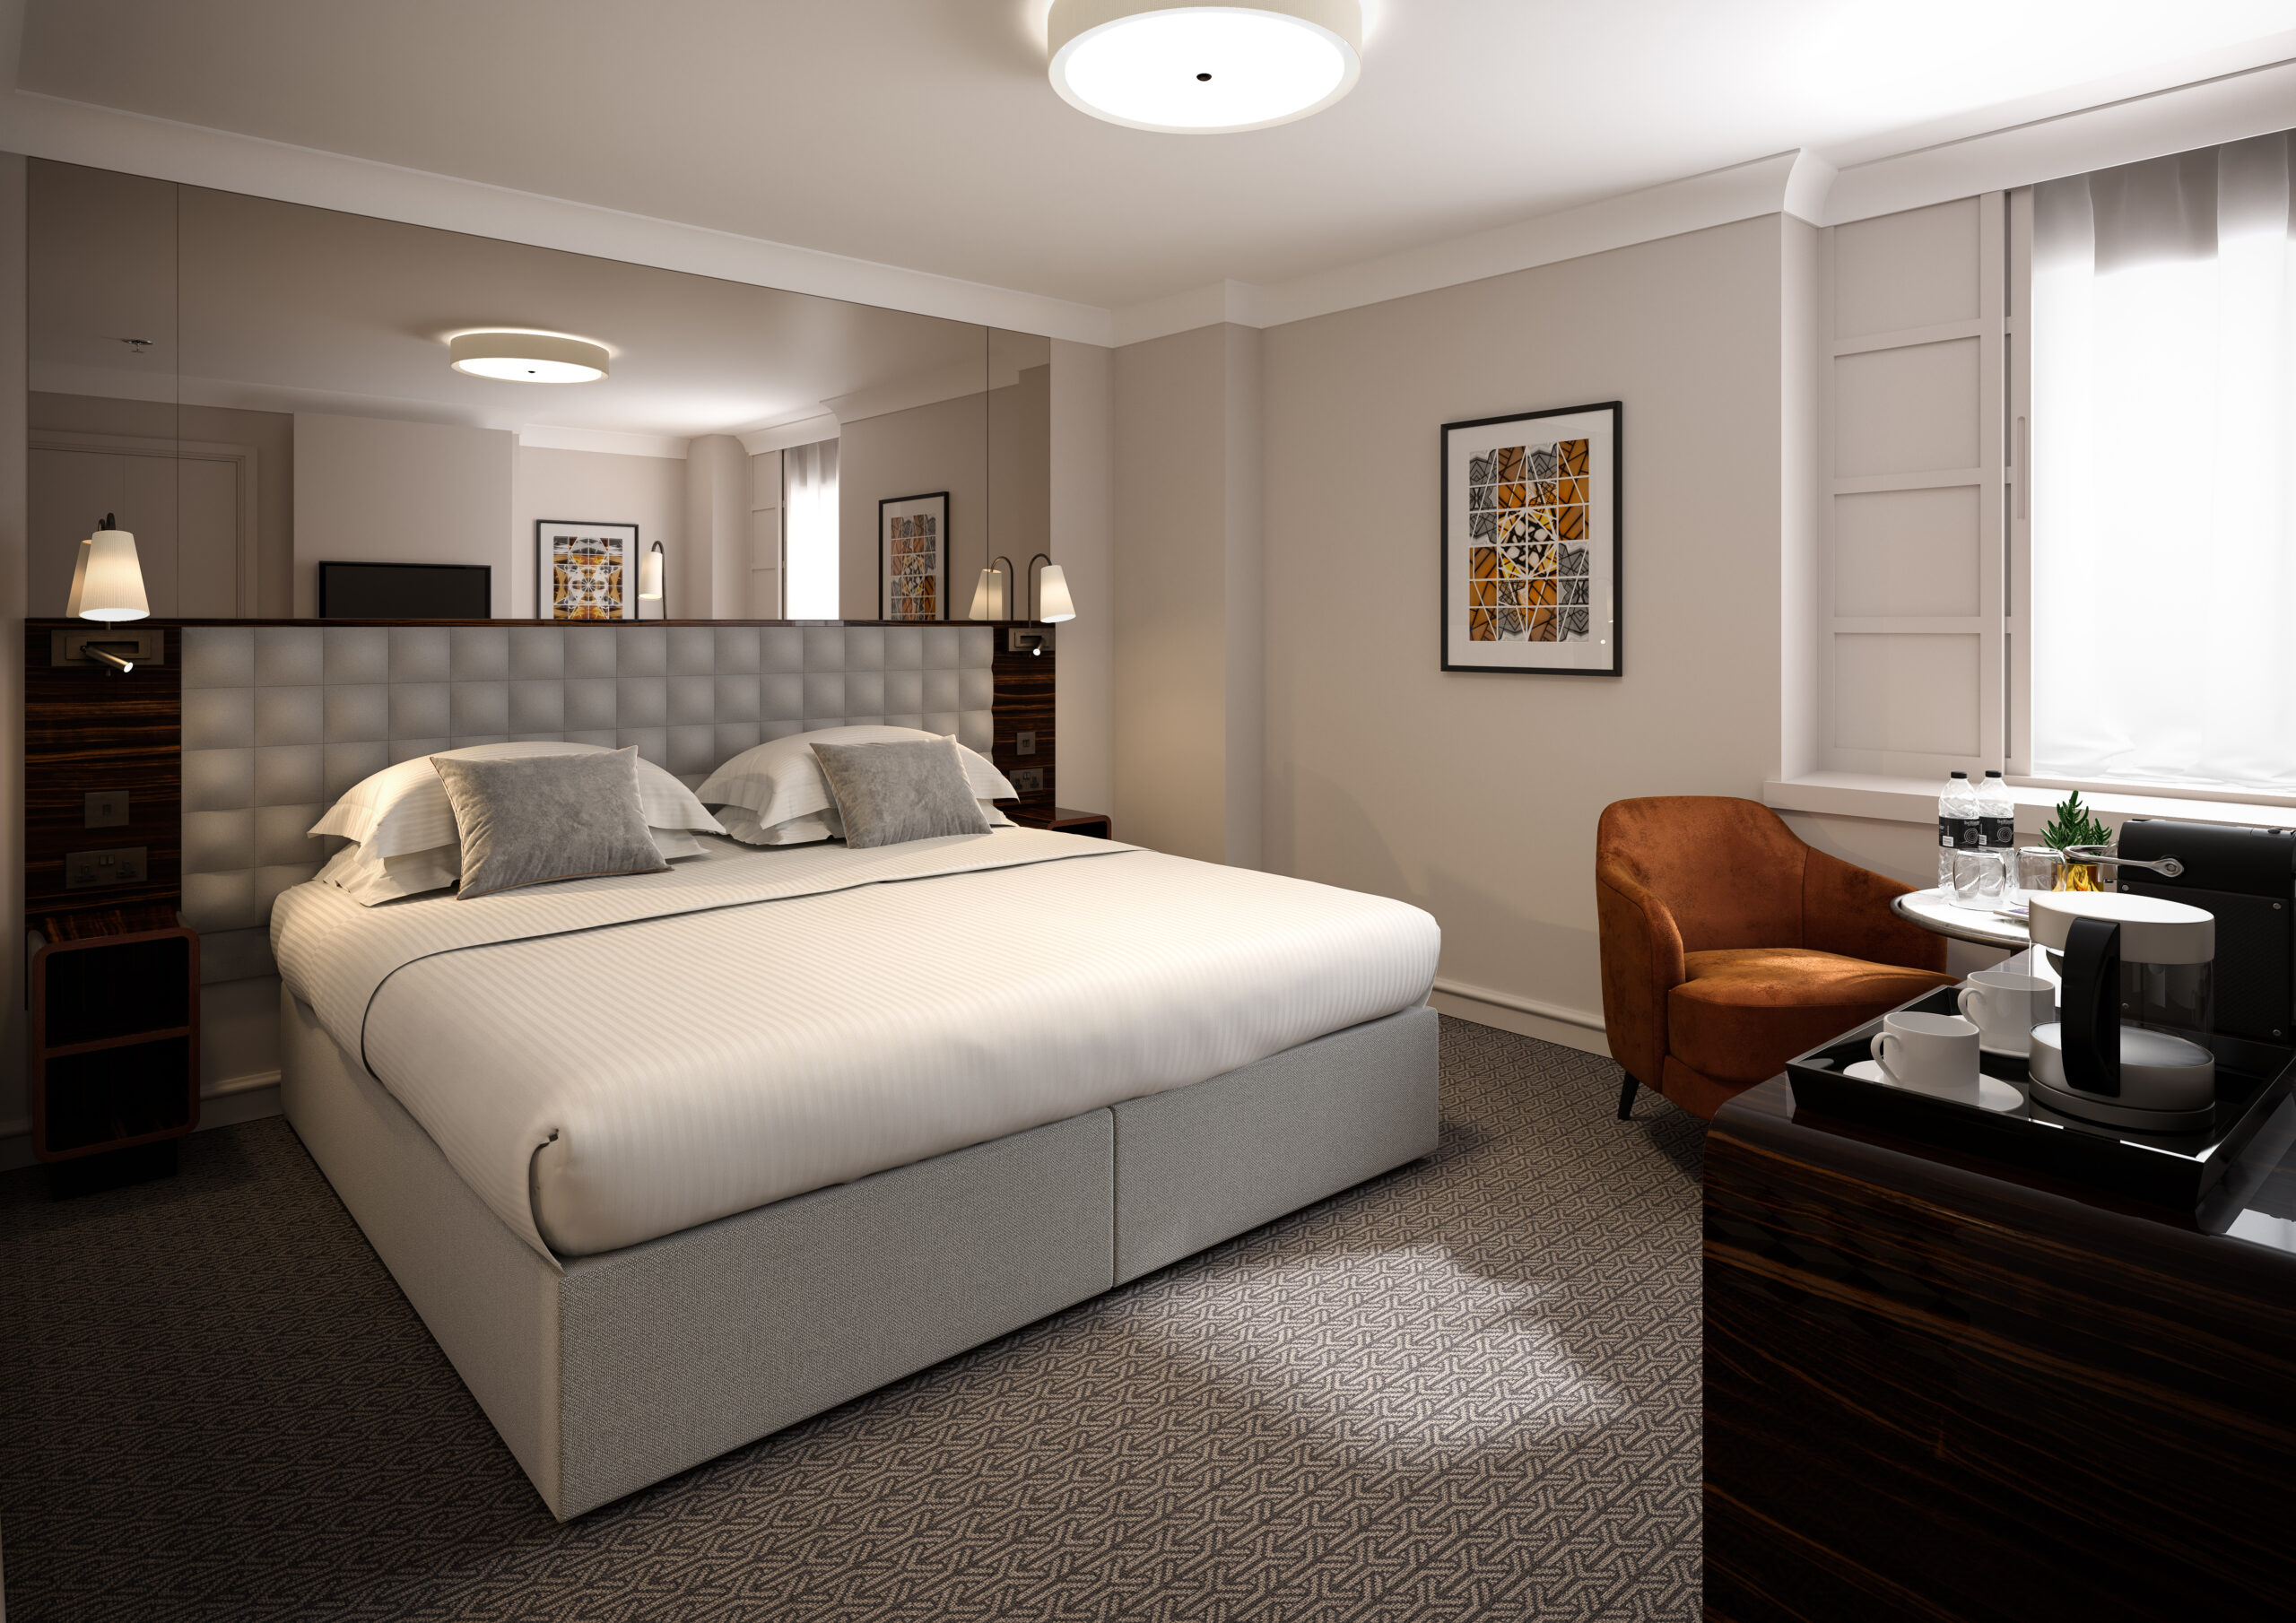 Deluxe king hotel rooms at Strand Palace are spacious with fast wifi, free mini bar and complimentary toiletries among the luxuries